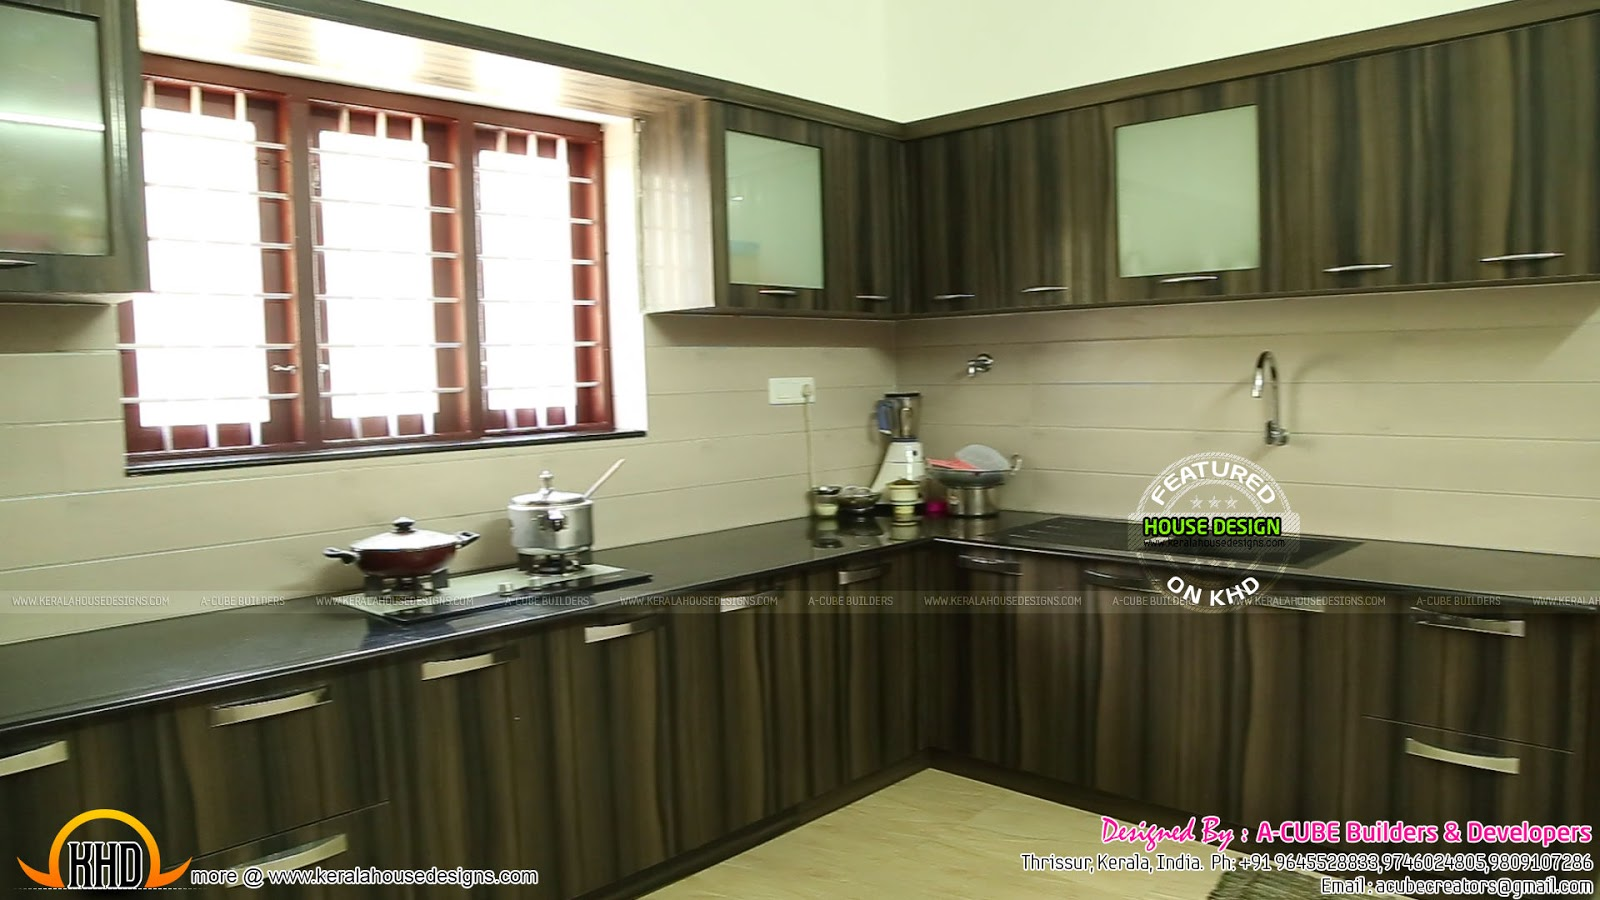 New house plans for 2016 starts here kerala home design for Kitchen design kerala